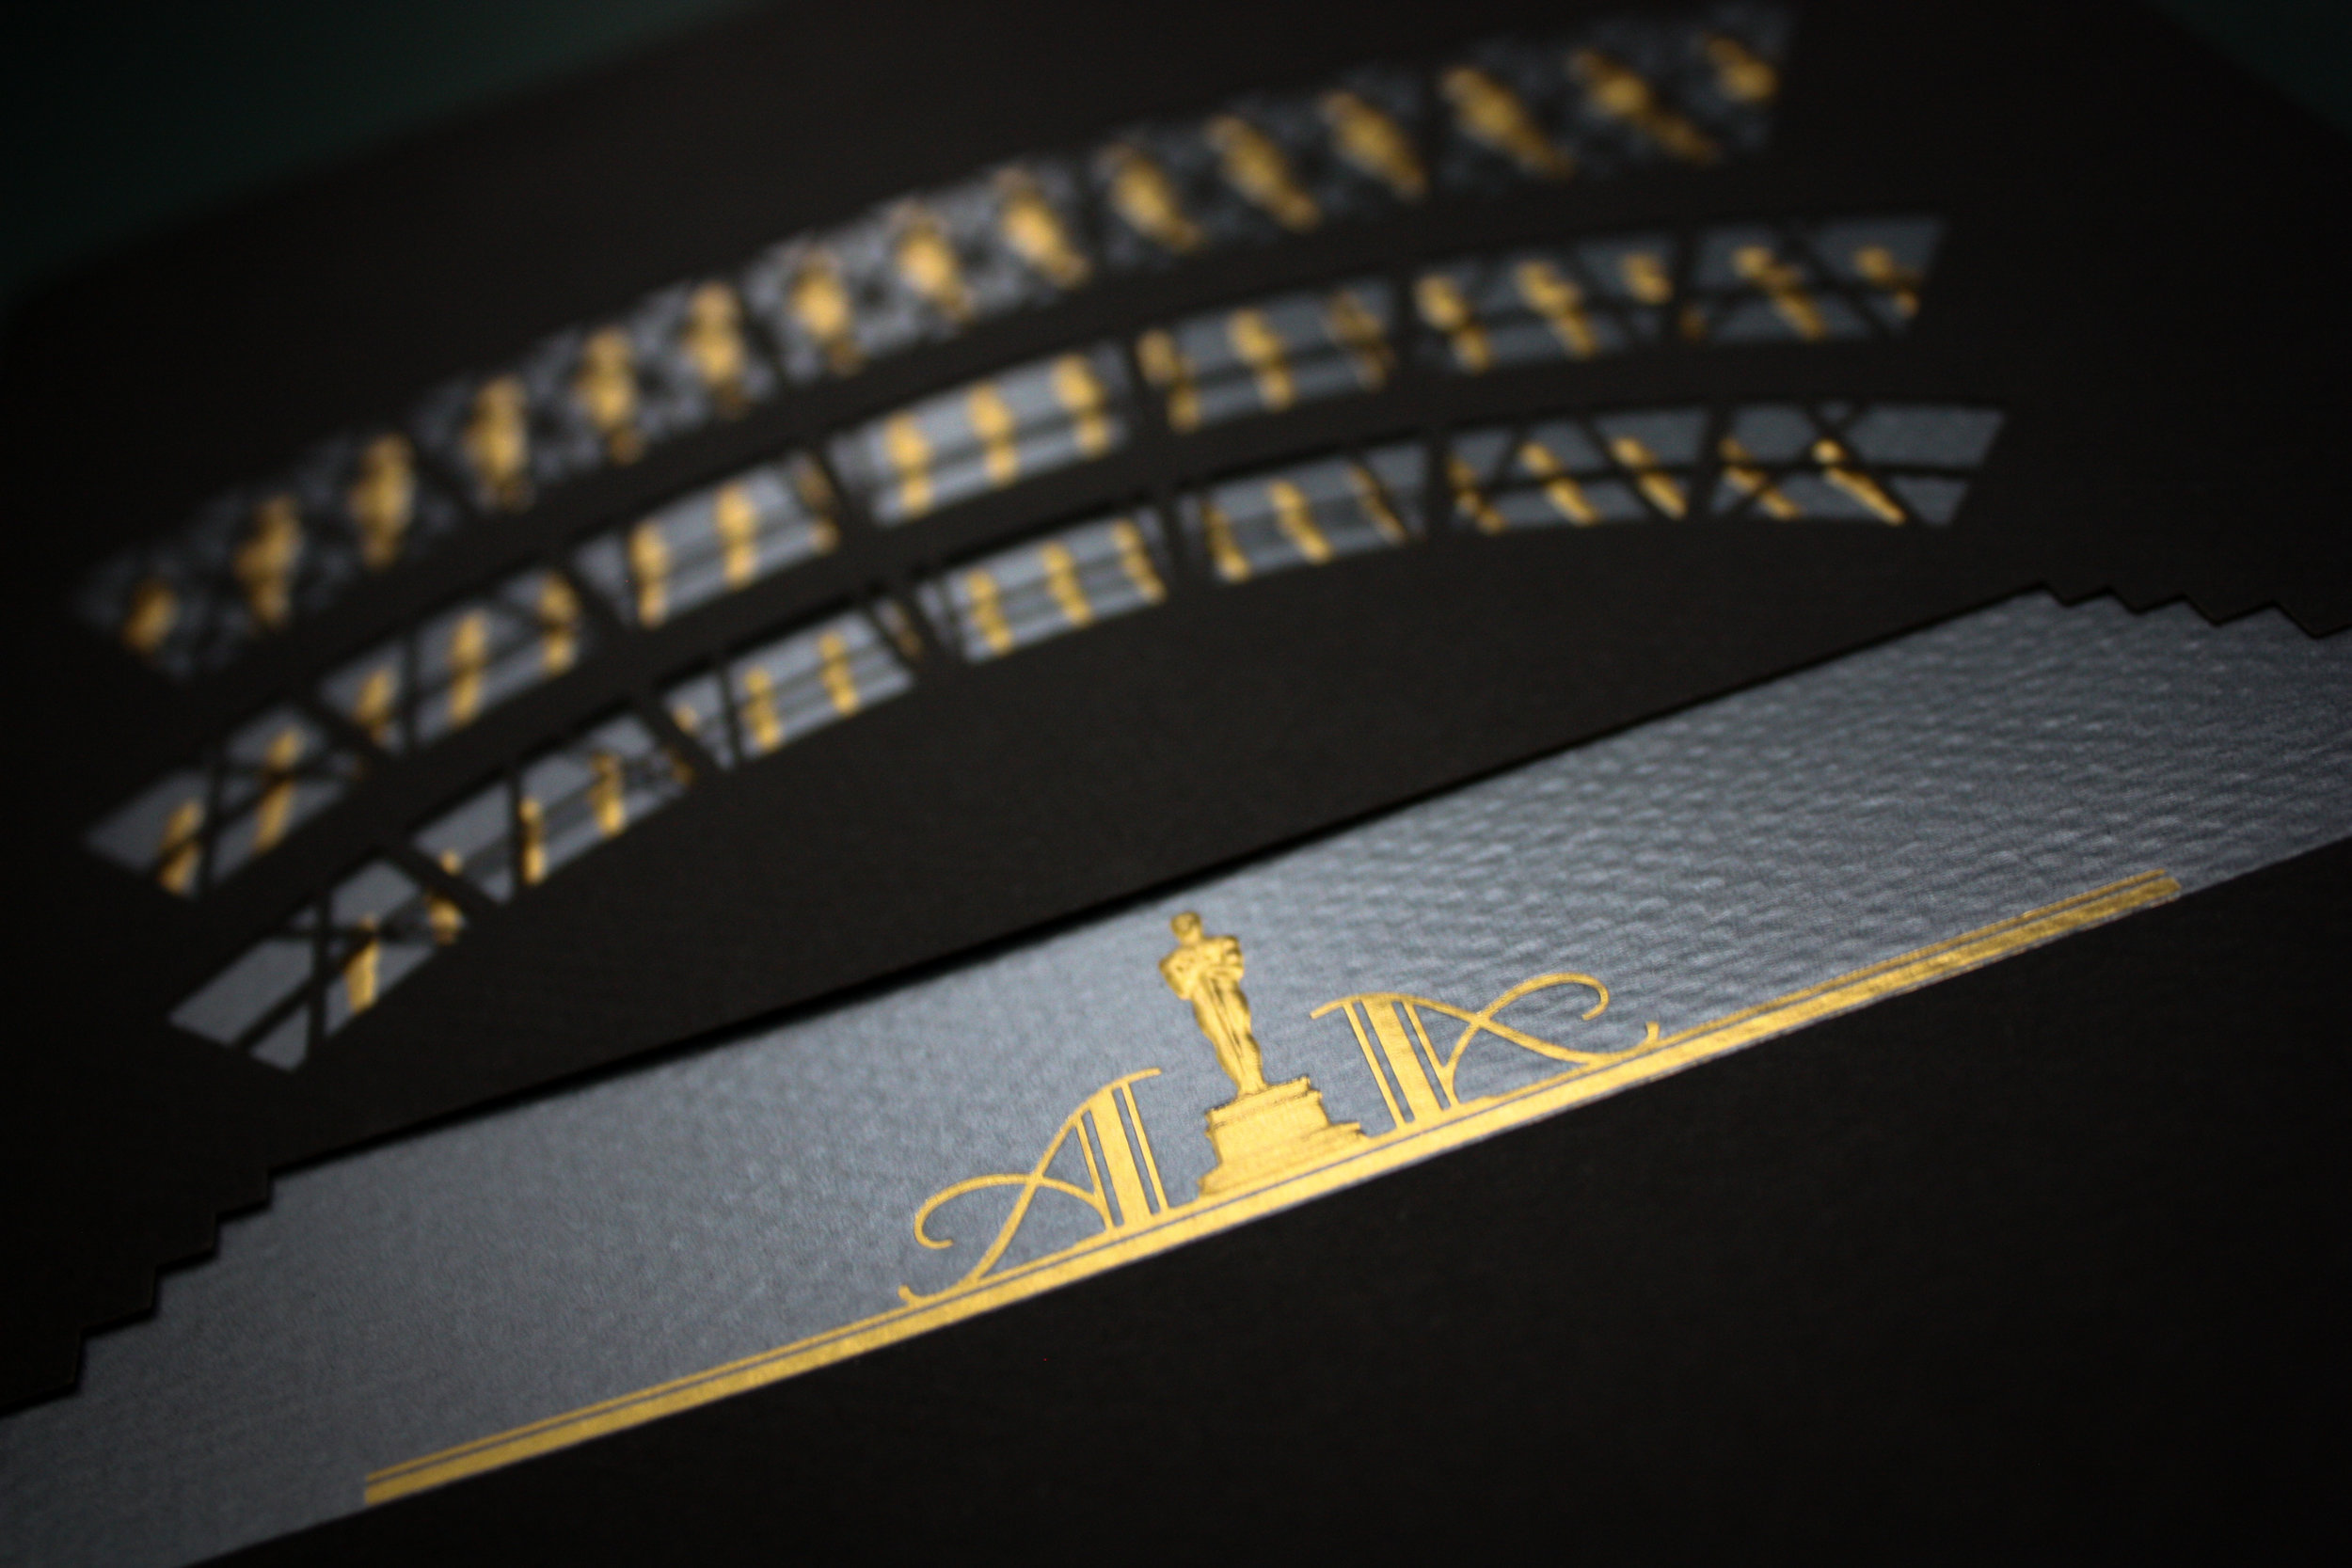 Print shop specializing in packaging, print, and letterpress.